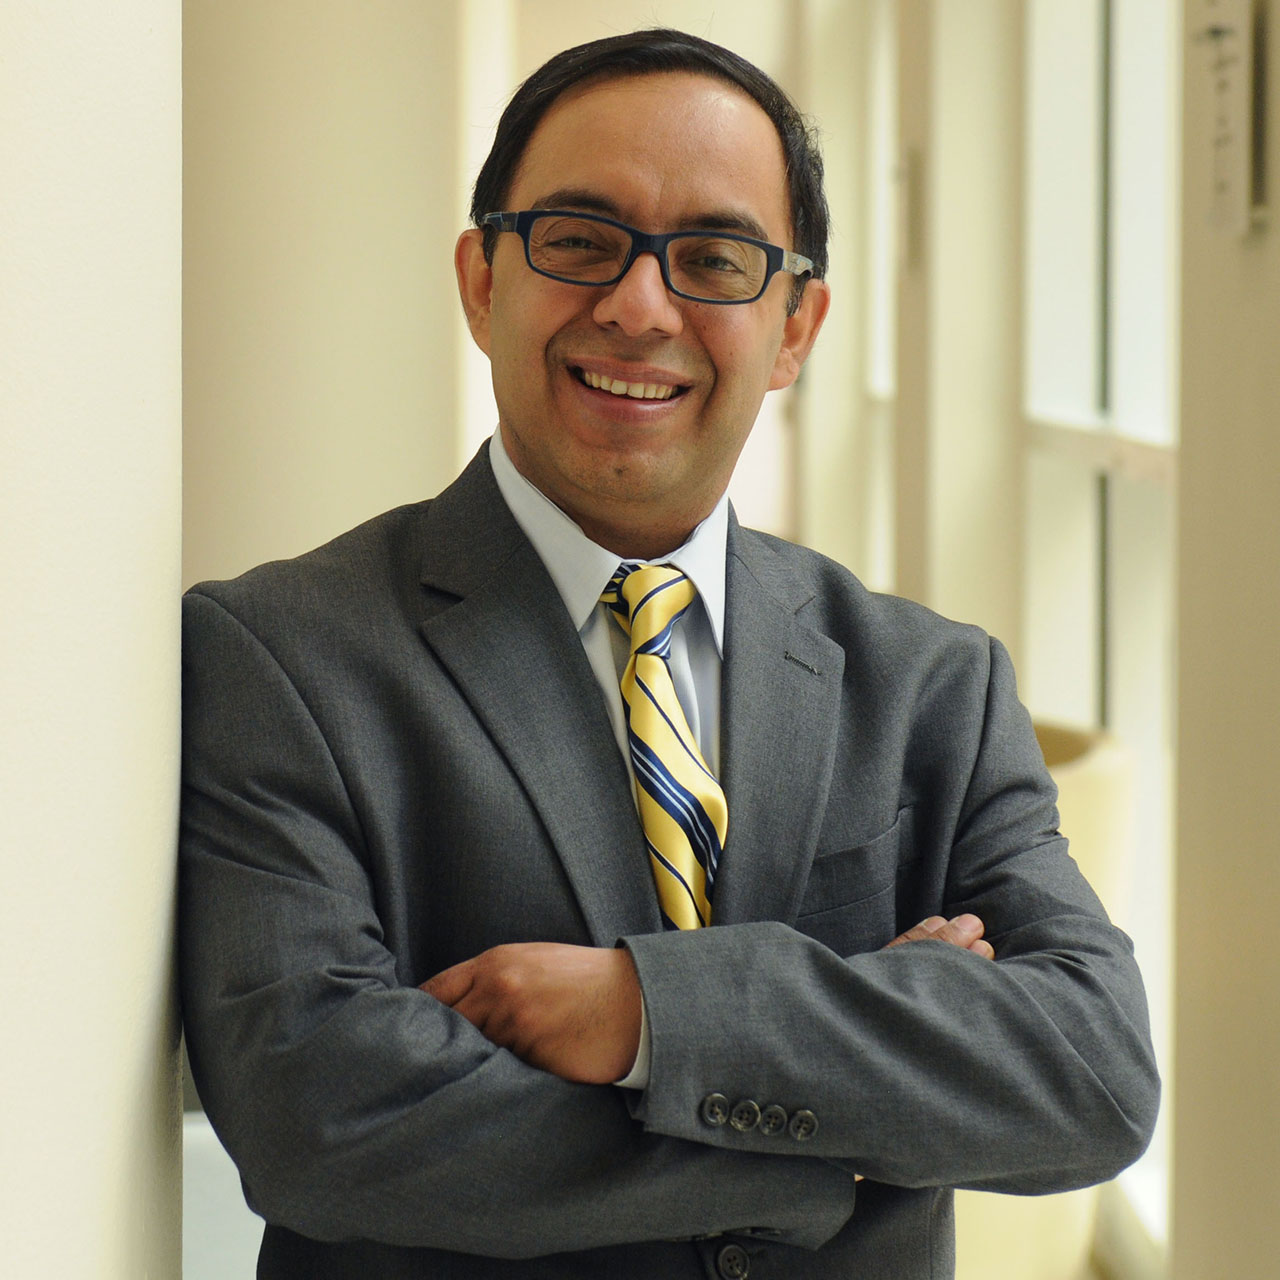 Associate Professor Manpreet Hora